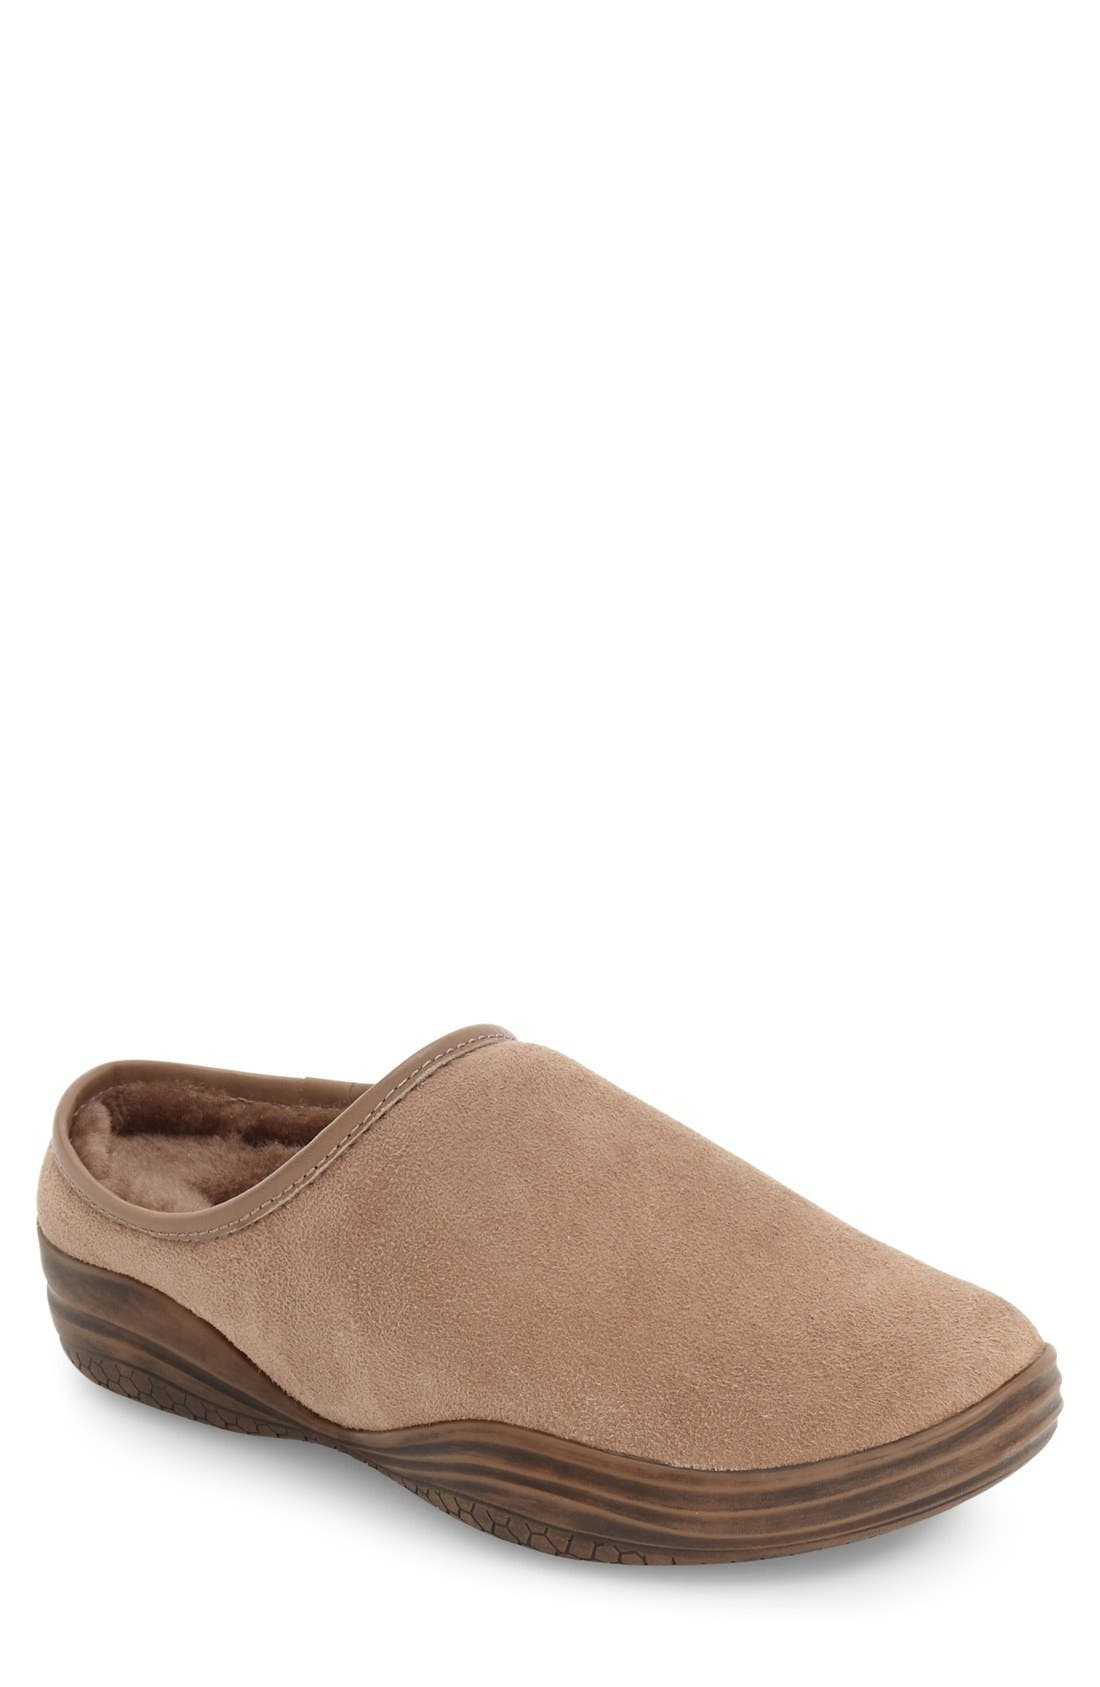 Alternate Image 1 Selected - bionica 'Stamford' Genuine Shearling Clog Slipper (Women)